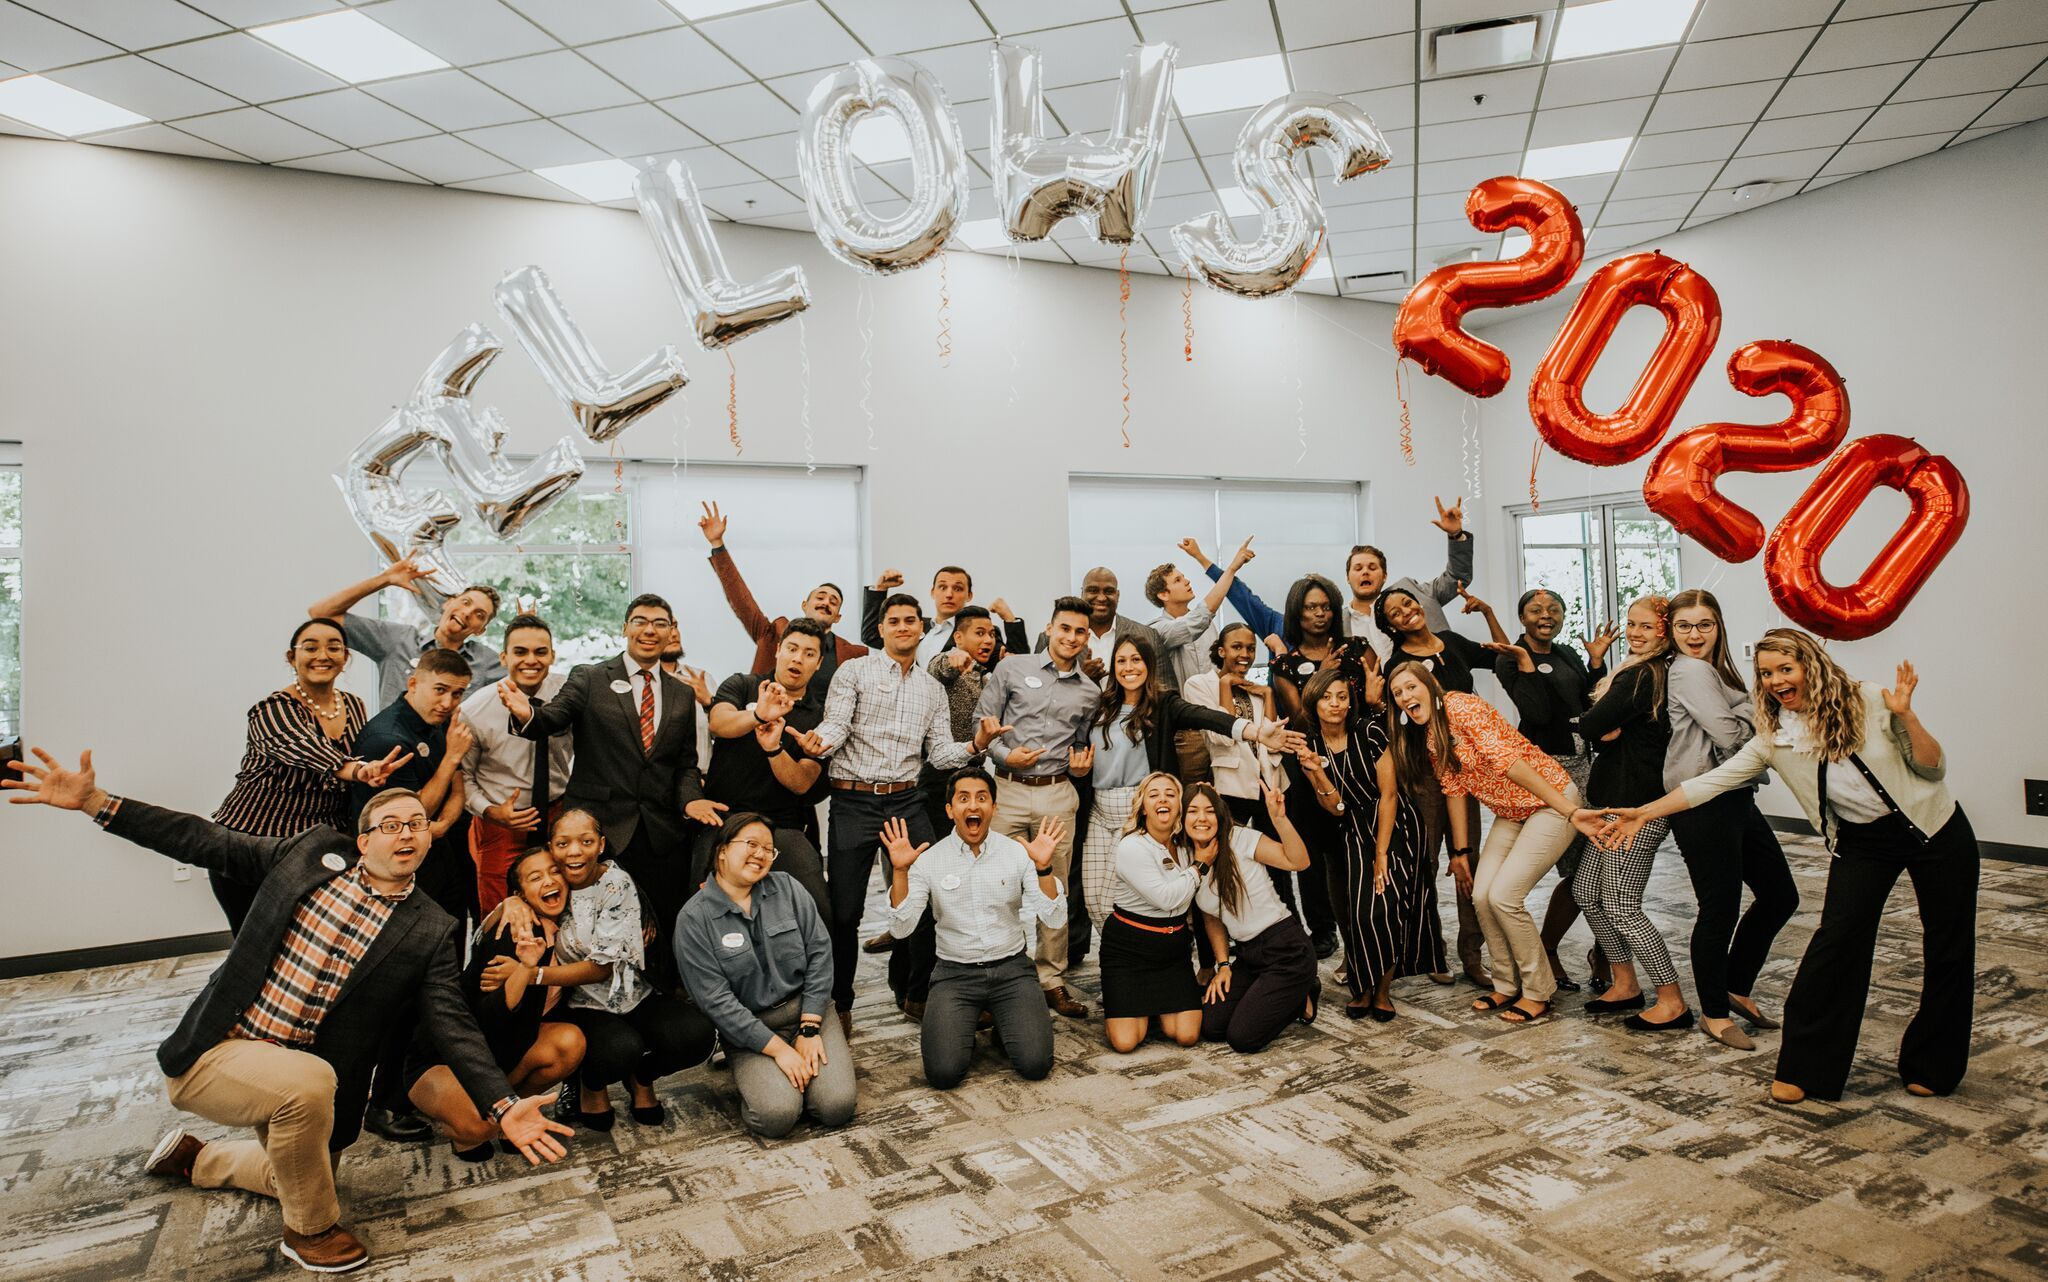 The 2020 Chick-fil-A Fellows celebrate Day 1 of their journey together.